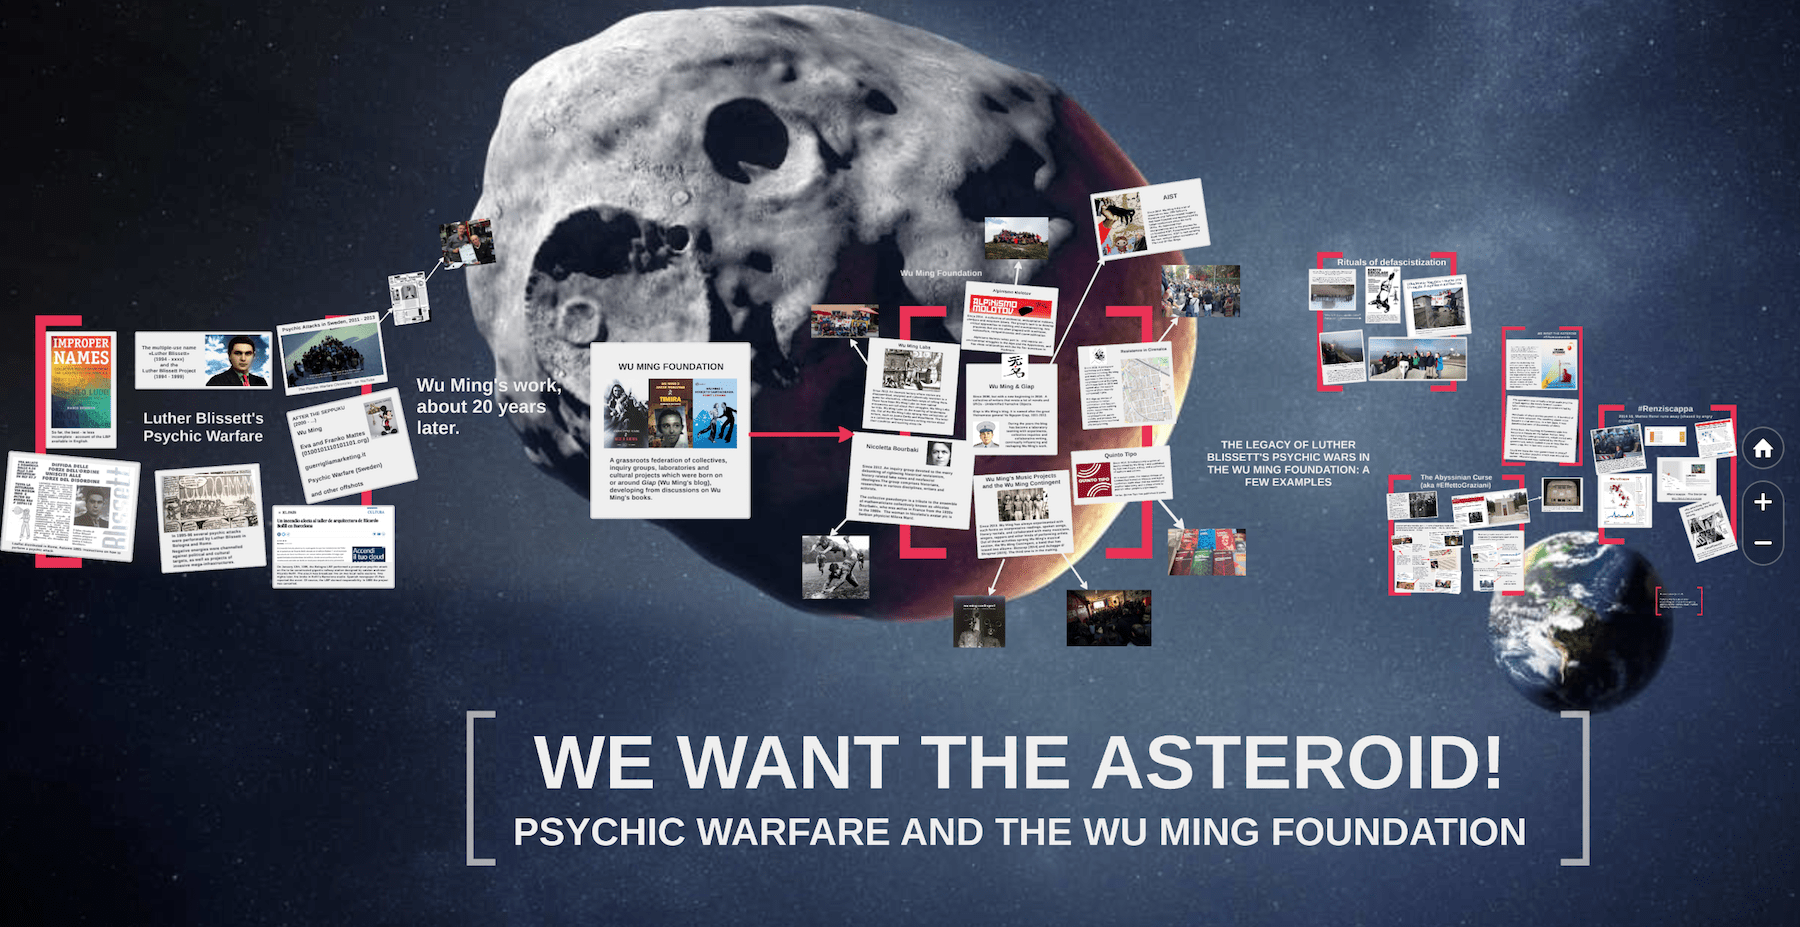 We Want The Asteroid